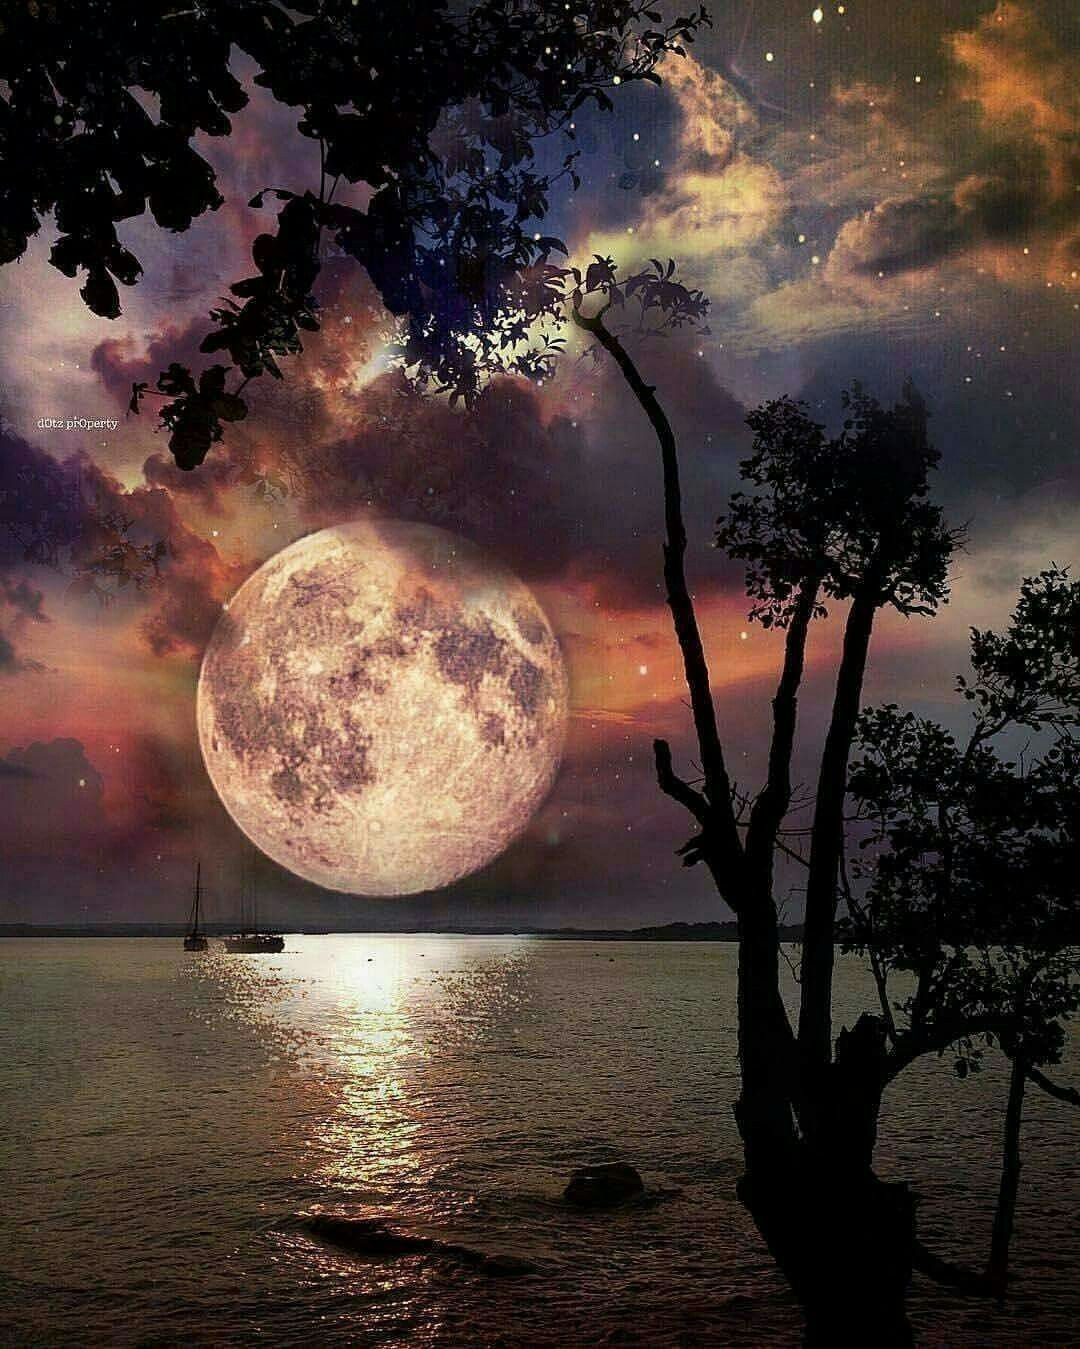 Moonlight And Night Sea View Moonlight Night Sea Beautiful Nature Beautiful Moon Nature Pictures